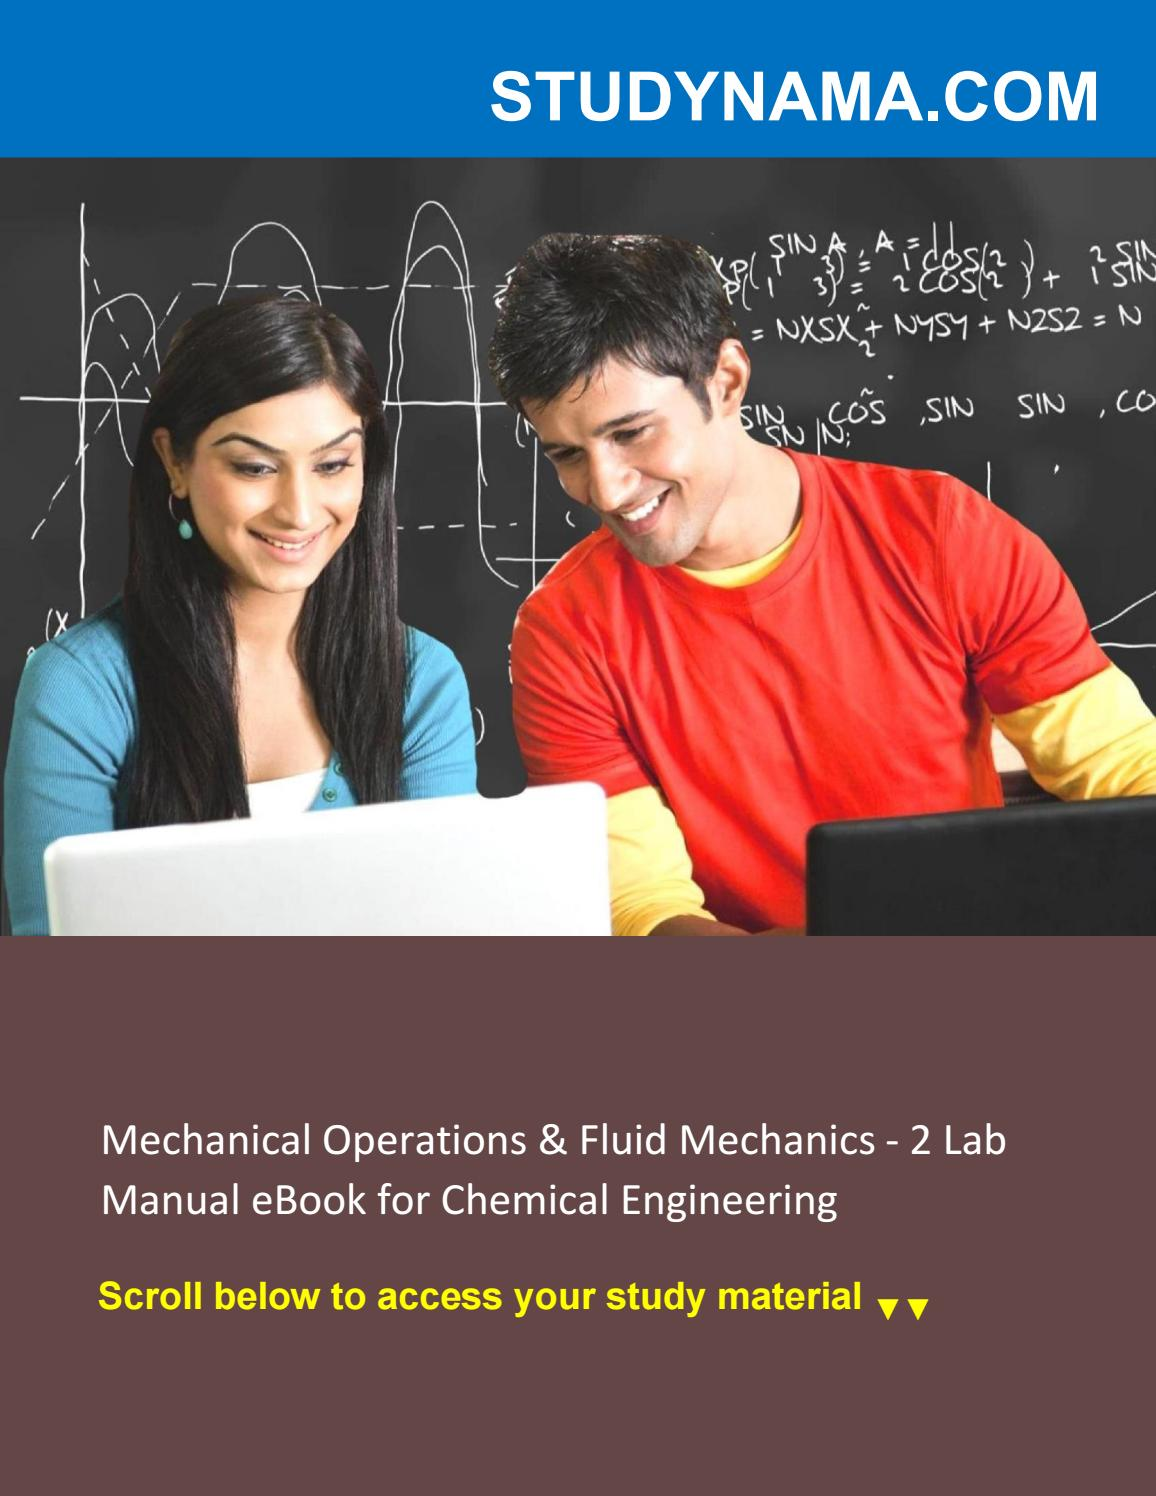 Mechanical Operations & Fluid Mechanics - 2 Lab Manual eBook